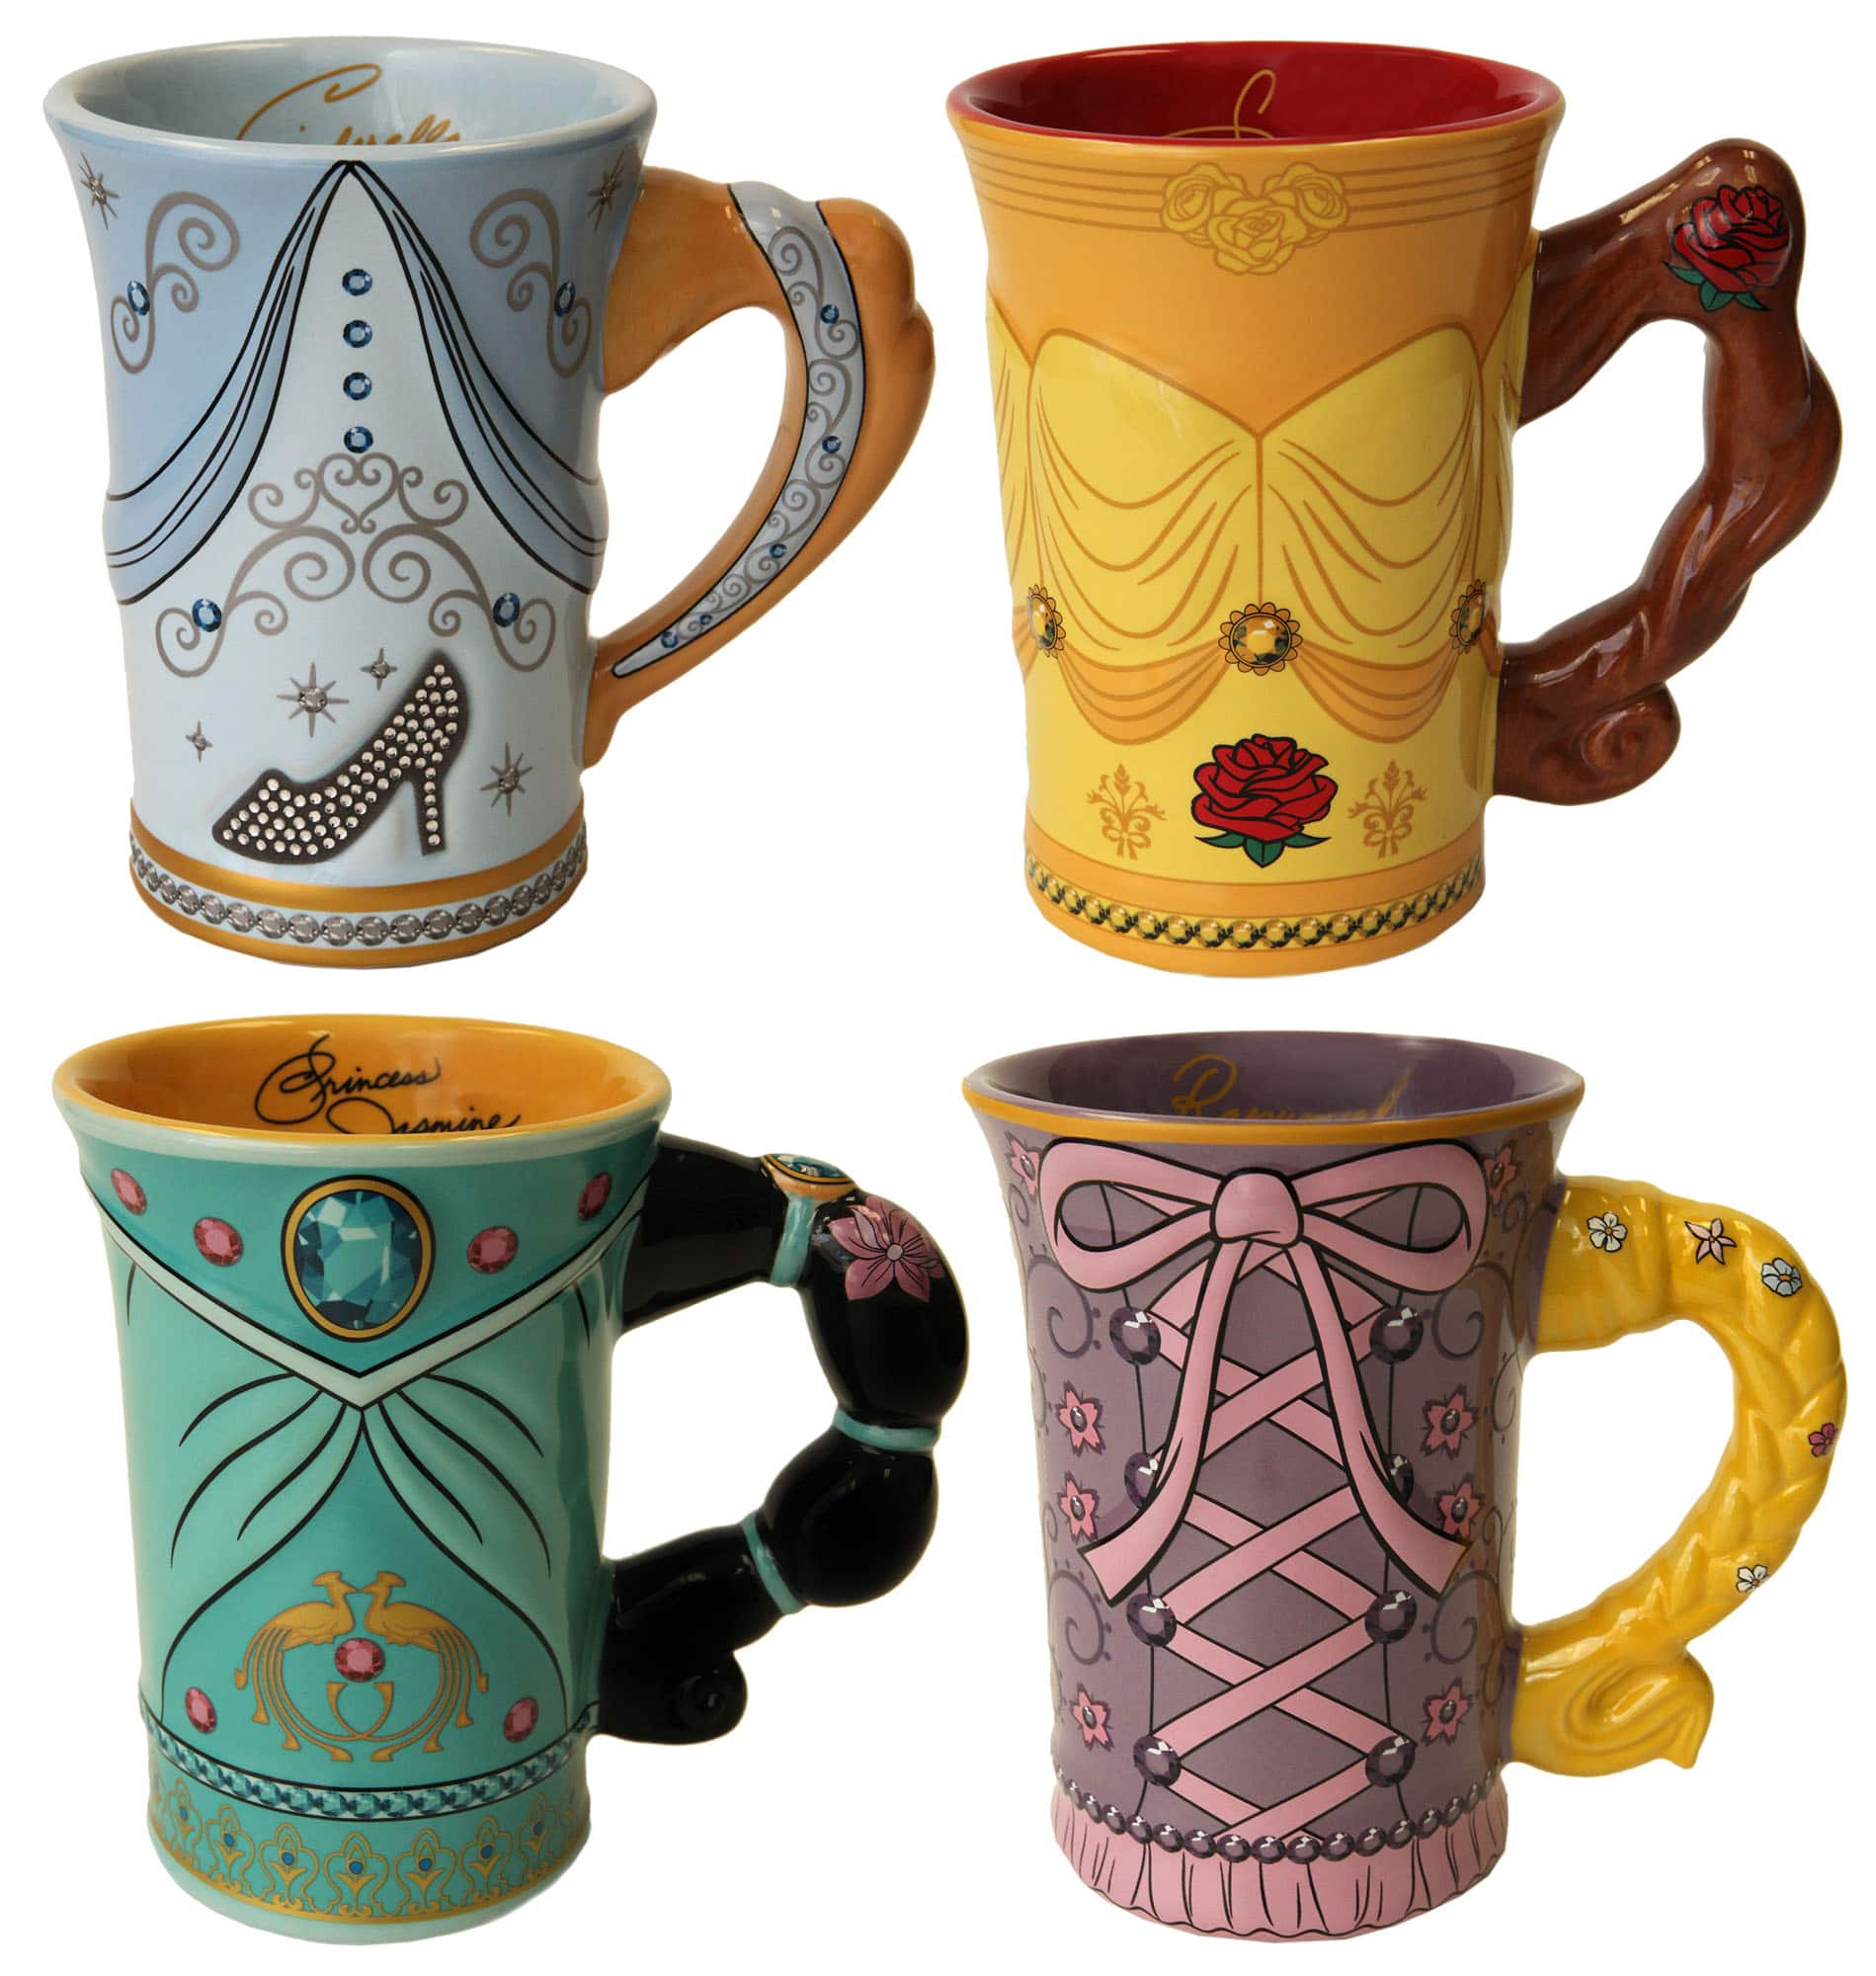 Show Off Your Morning Disney Side With New Mugs Coming To Disney Parks Disney Parks Blog